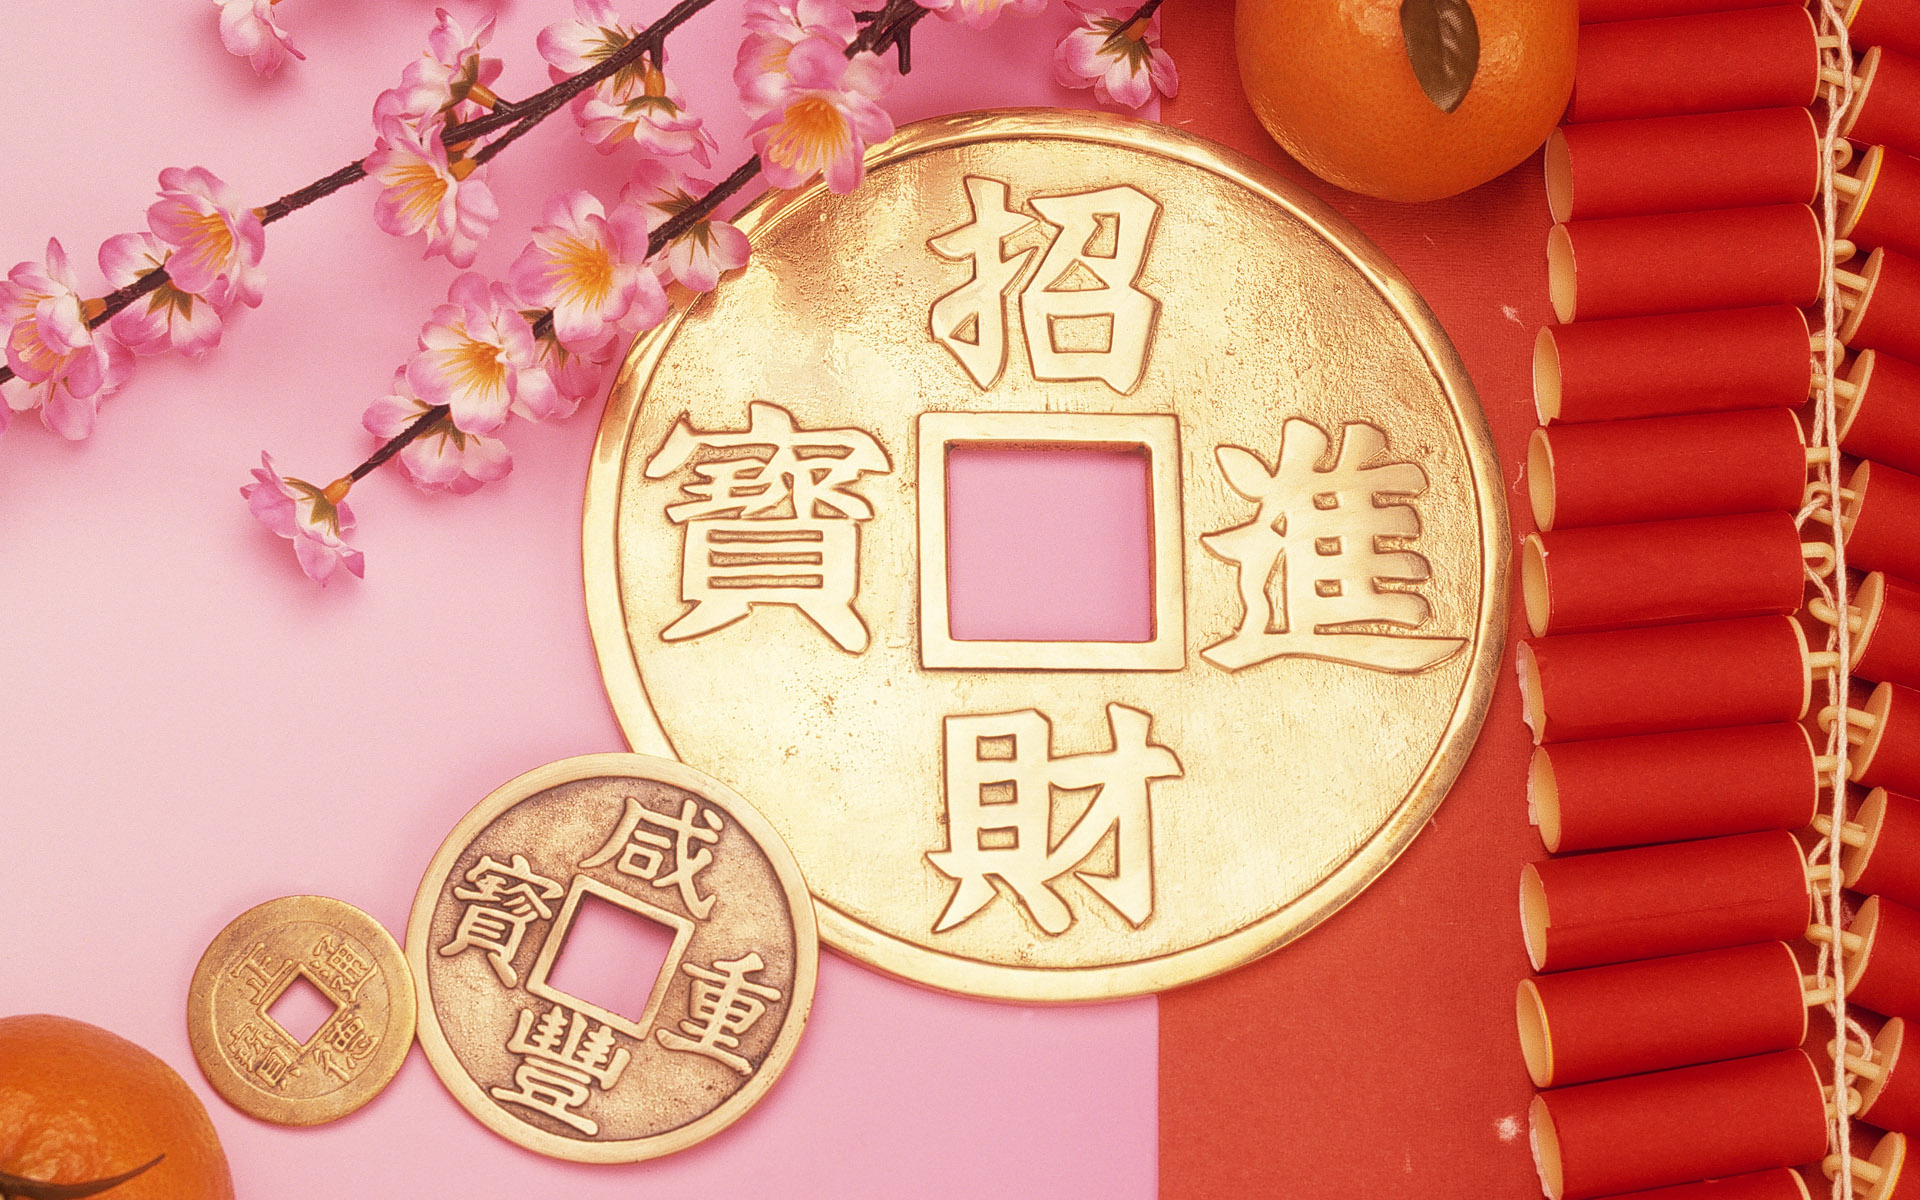 Chinese New Year Wallpaper HD 9To5AnimationsCom 1920x1200